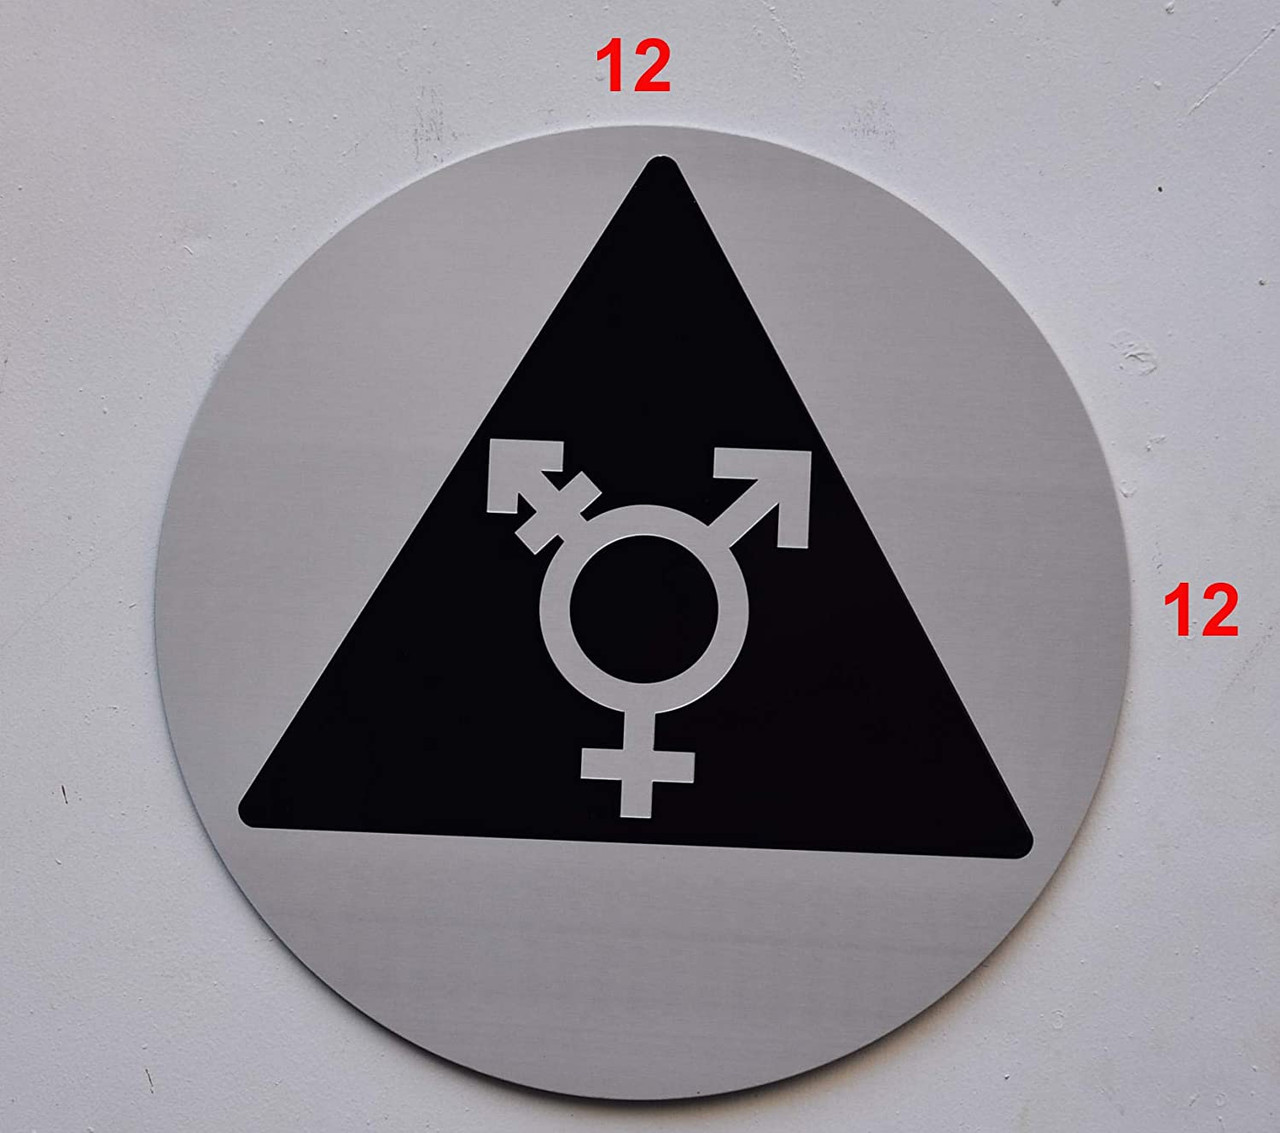 12x12 Gender Neutral Symbols in Black and White Window Cling 5-Pack CGSignLab